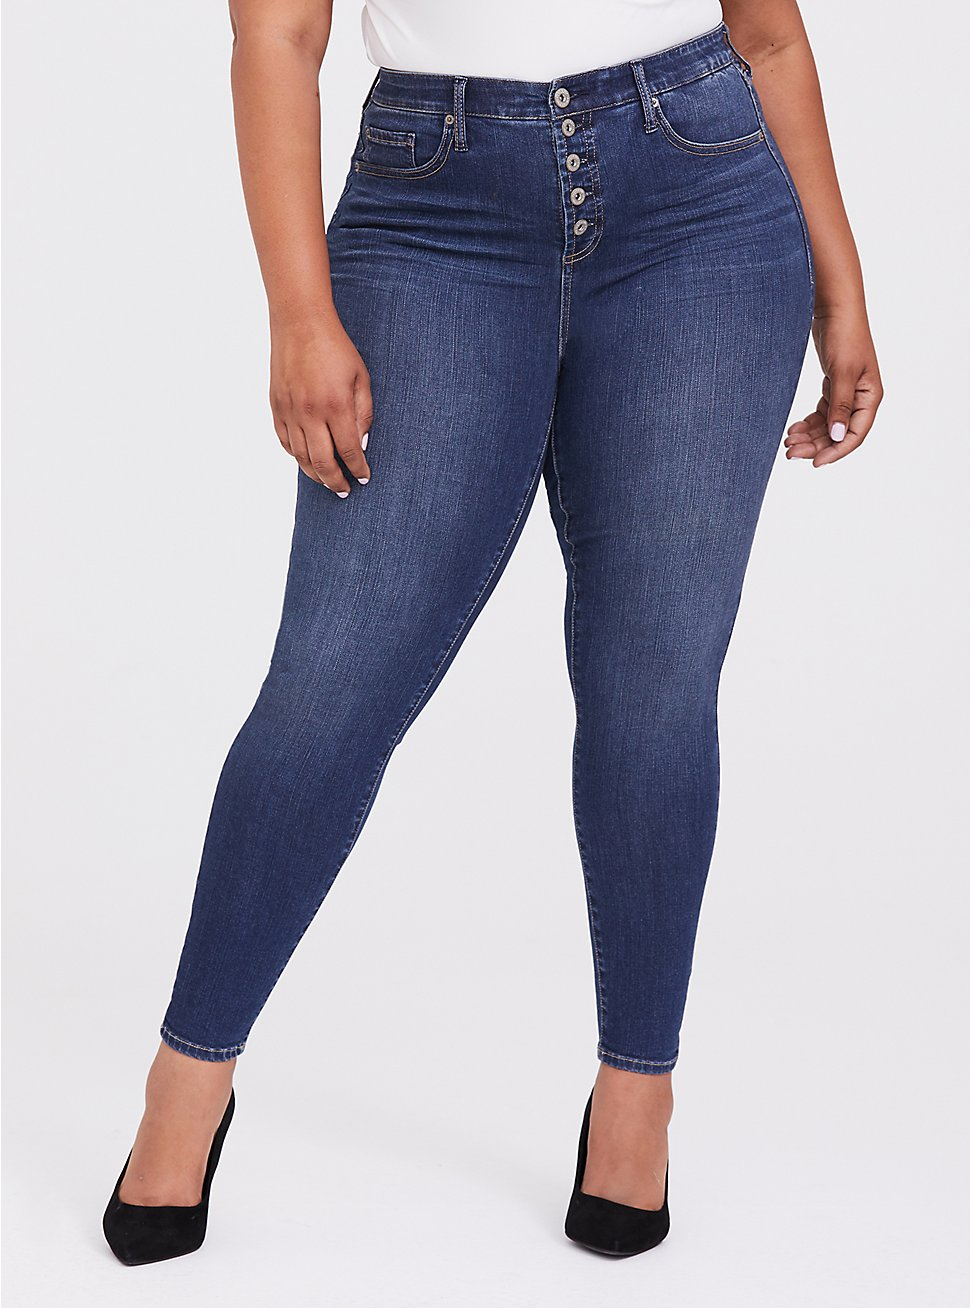 Sky High Skinny Jean - Premium Stretch Dark Wash, THAMES, hi-res